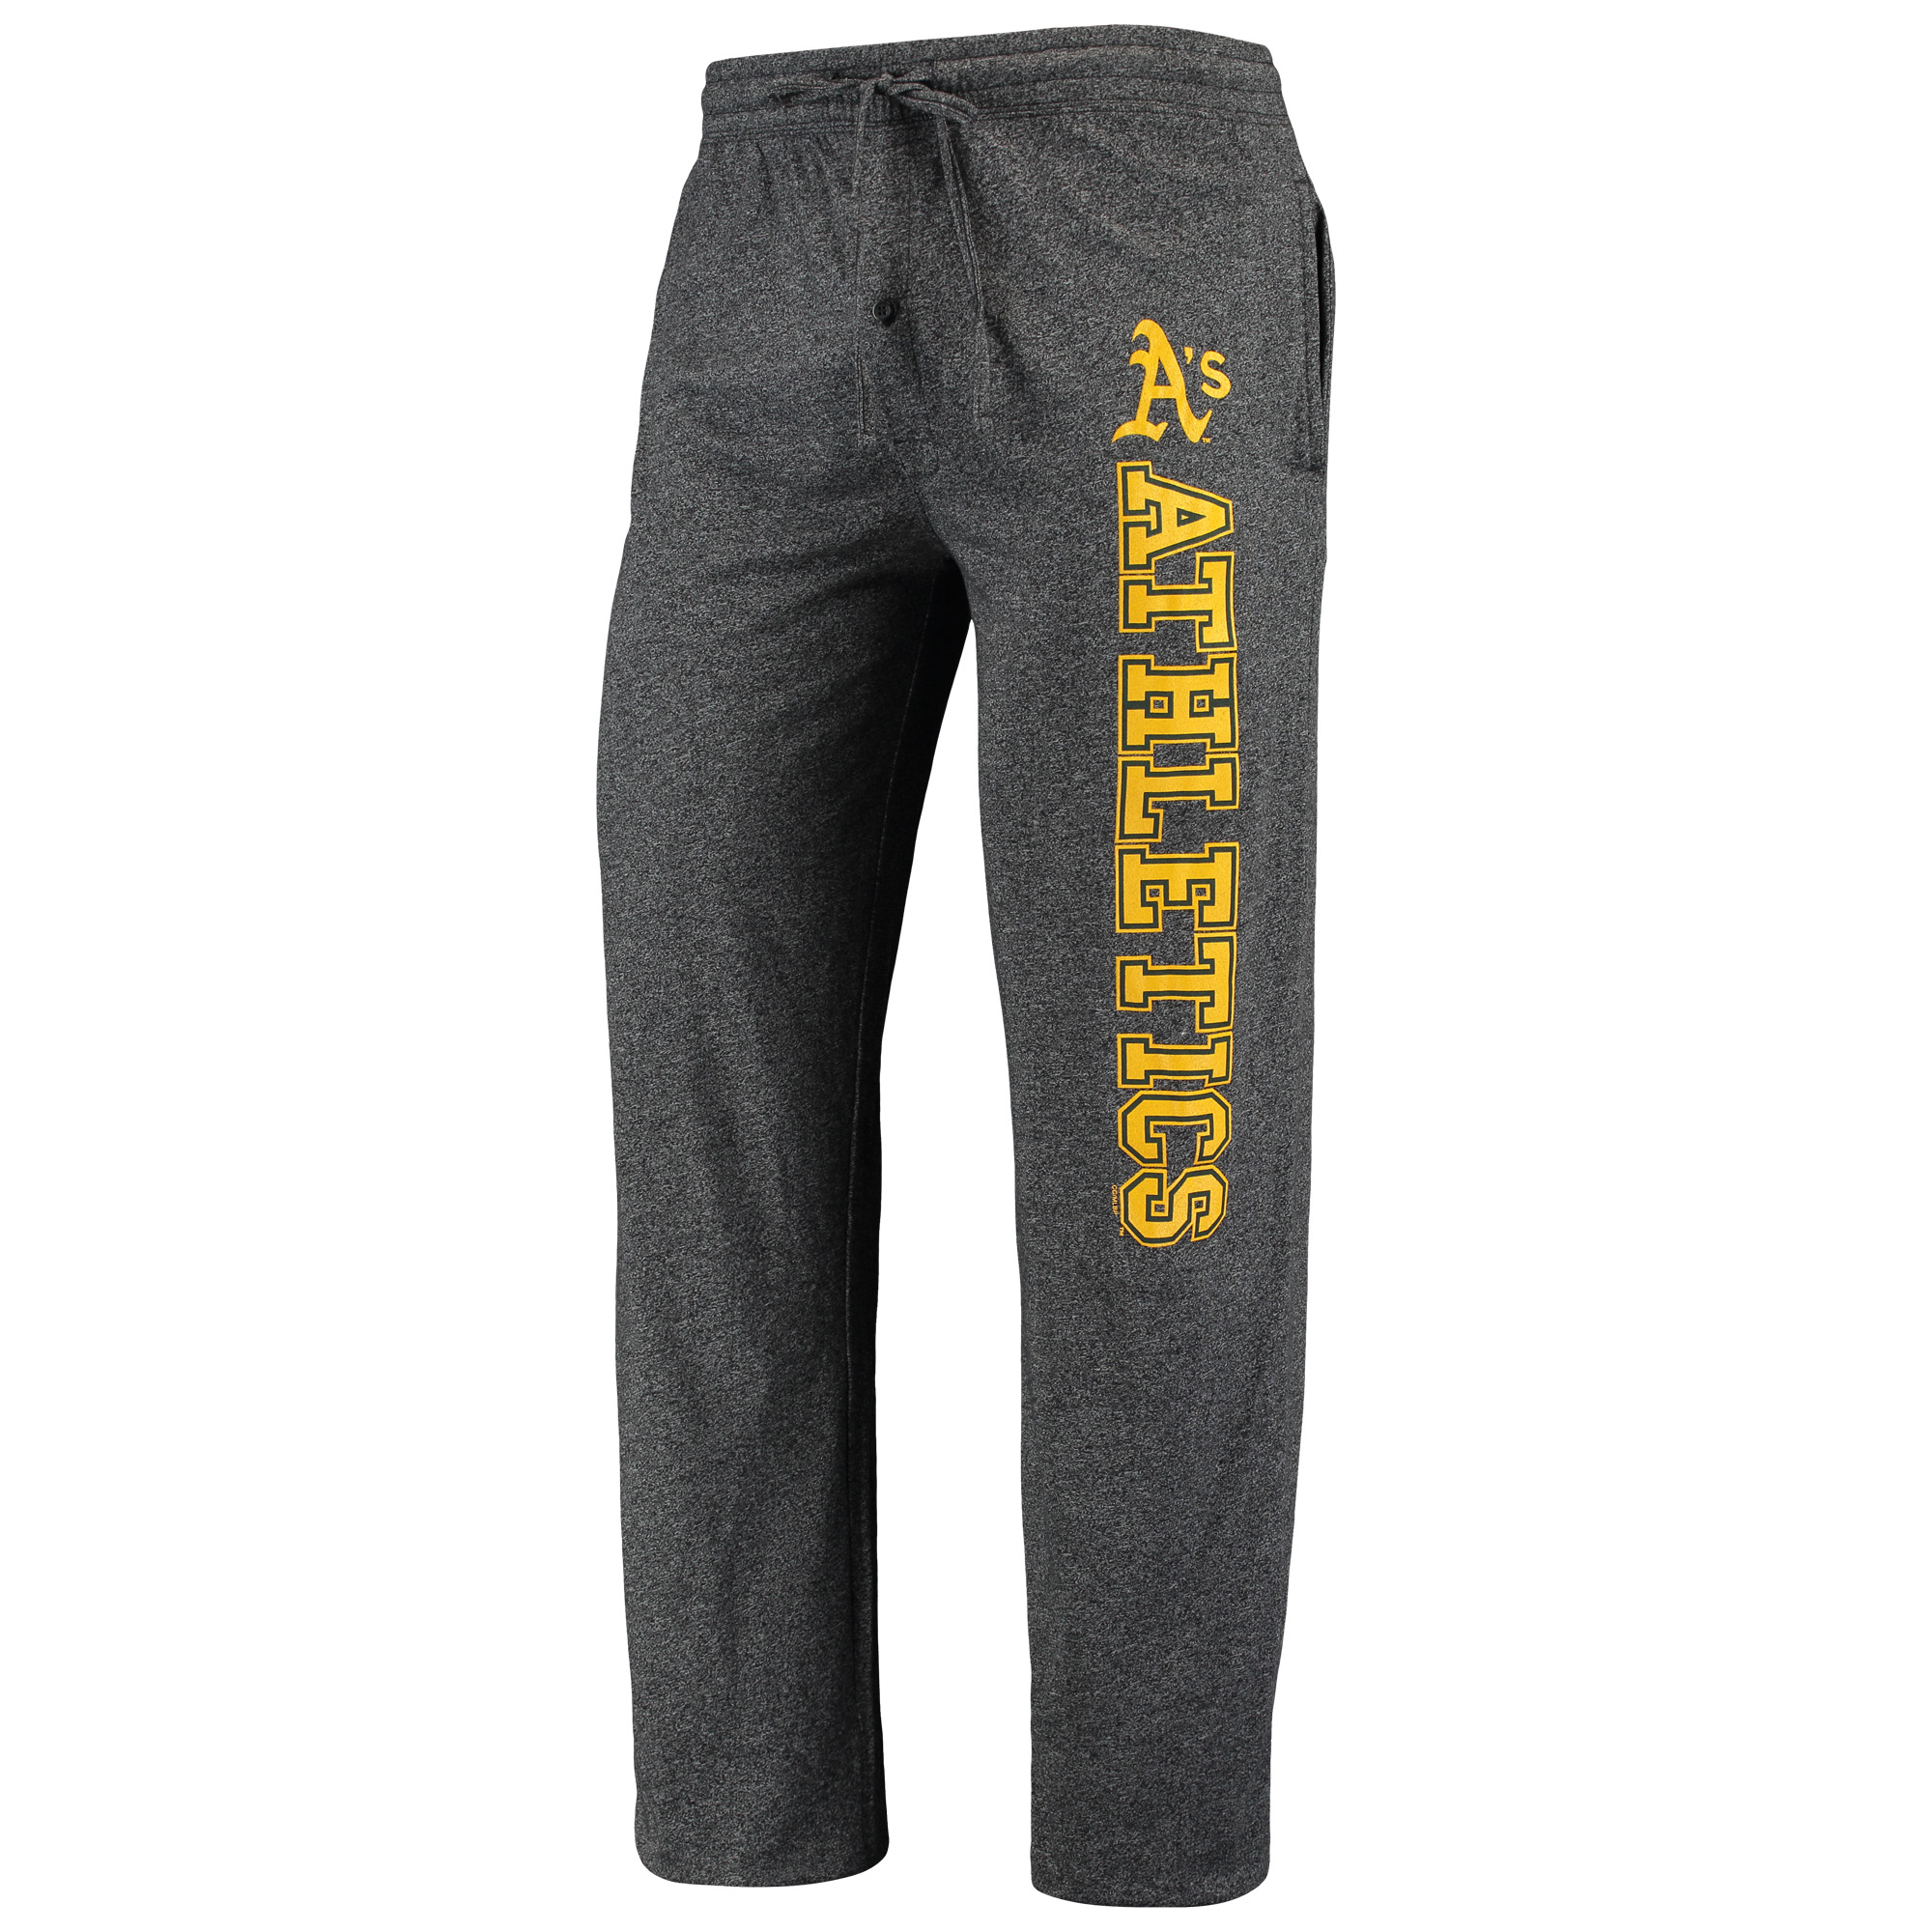 Oakland Athletics Concepts Sport Quest Pants - Heathered Charcoal